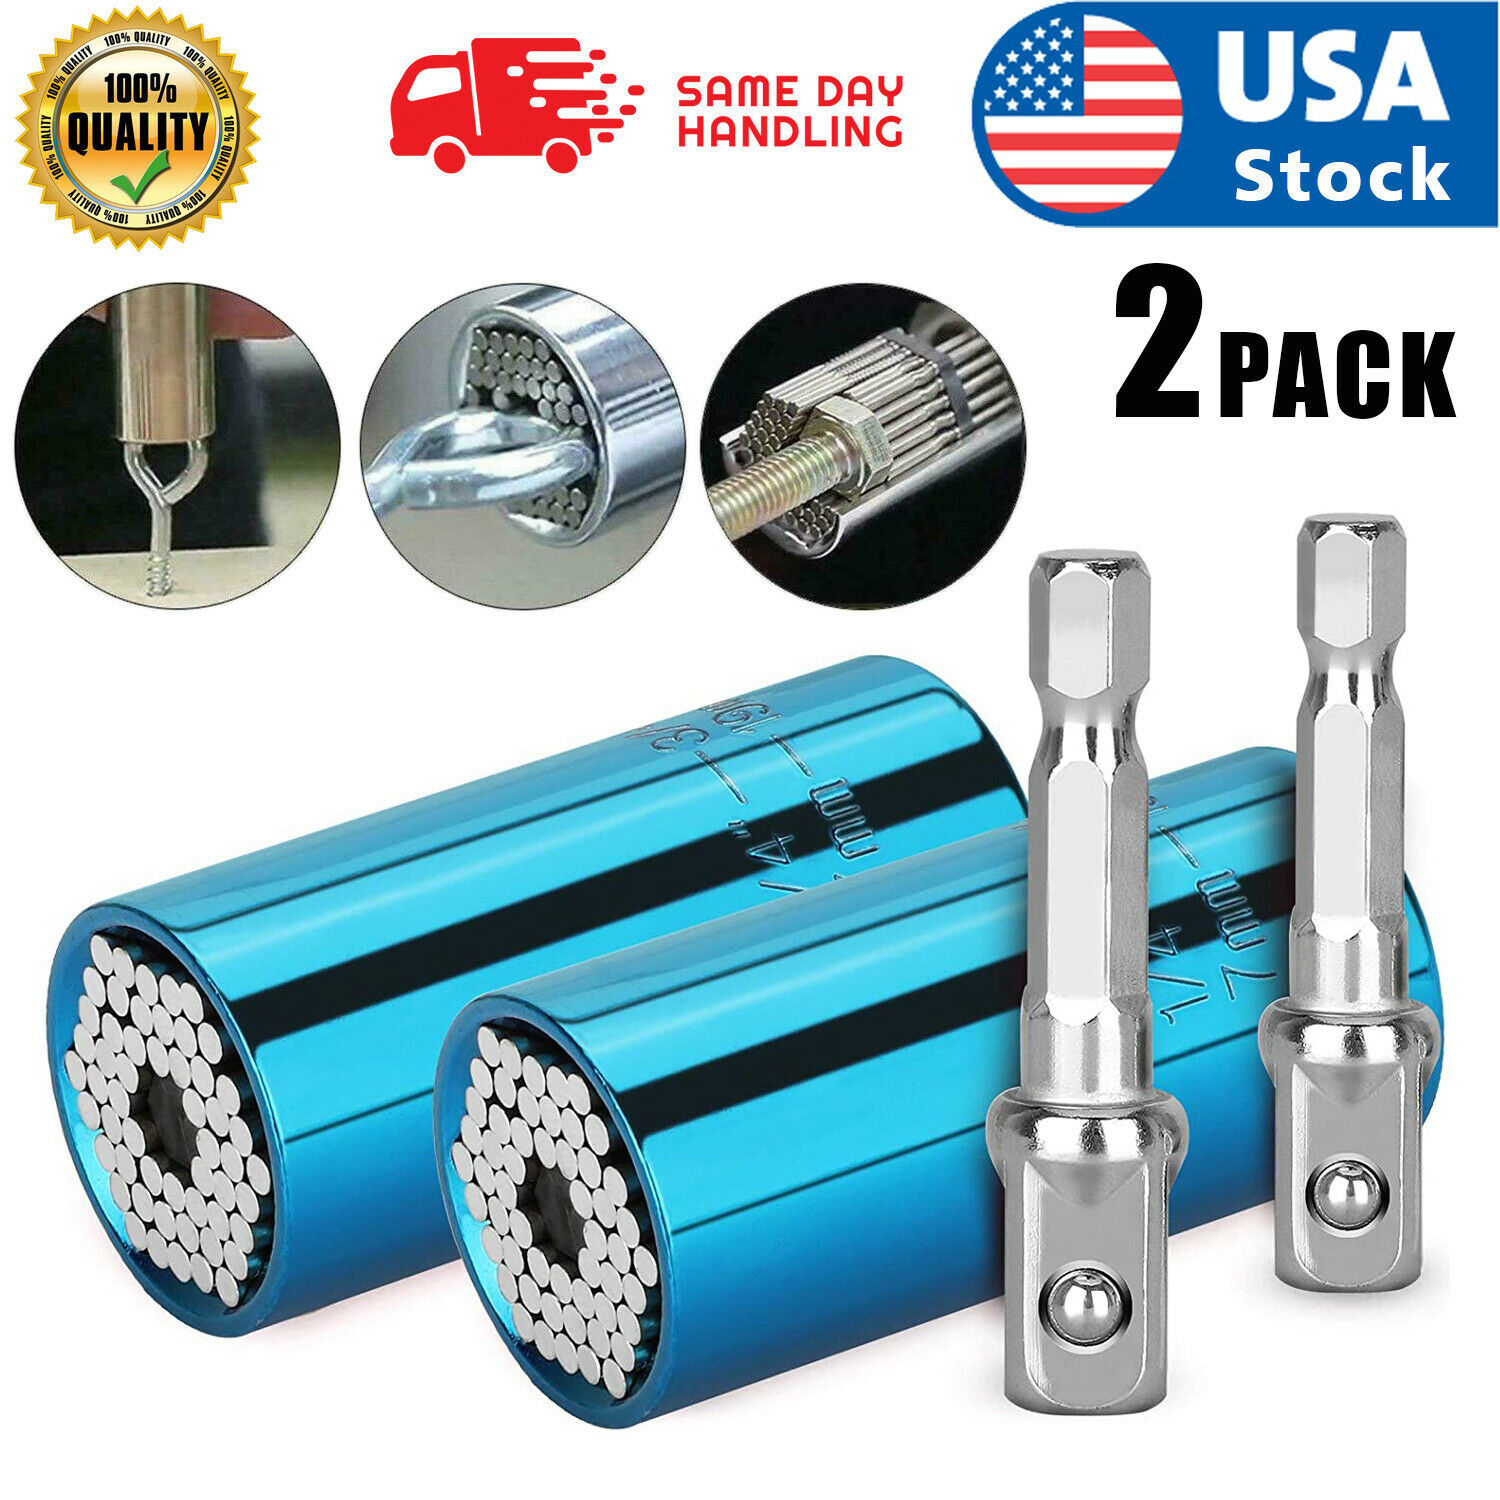 2PC Universal Socket Wrench Magical Grip Alligator Multi Tool with Drill Adapter Hand Tools